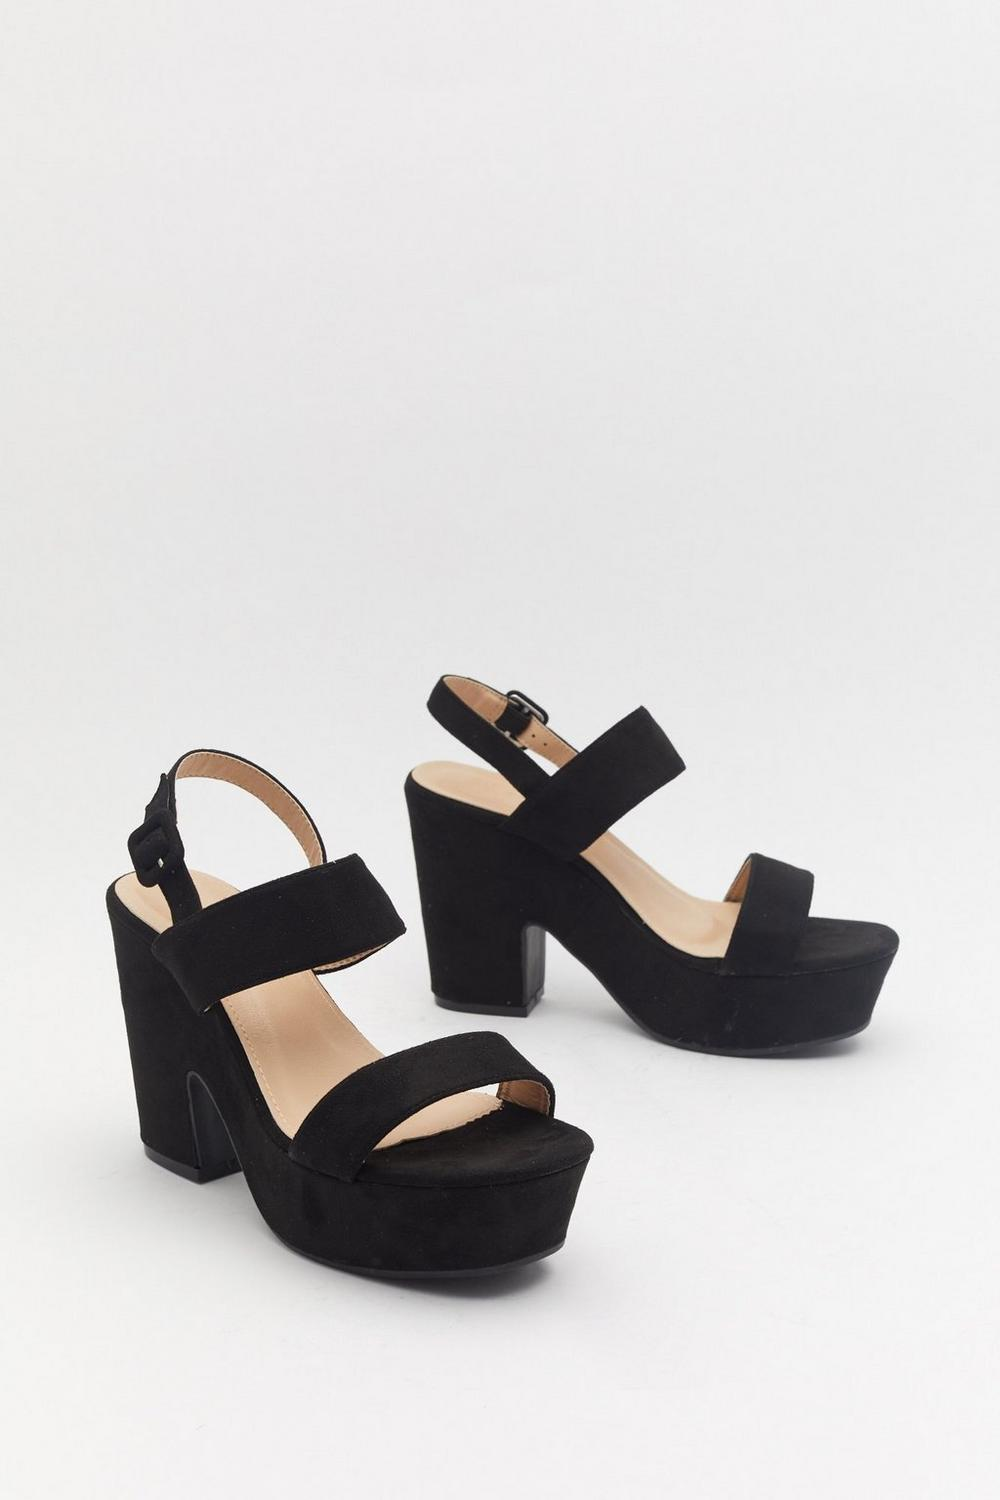 857d502a7bb Head Over Heels Faux Suede Platform Sandals | Shop Clothes at Nasty Gal!